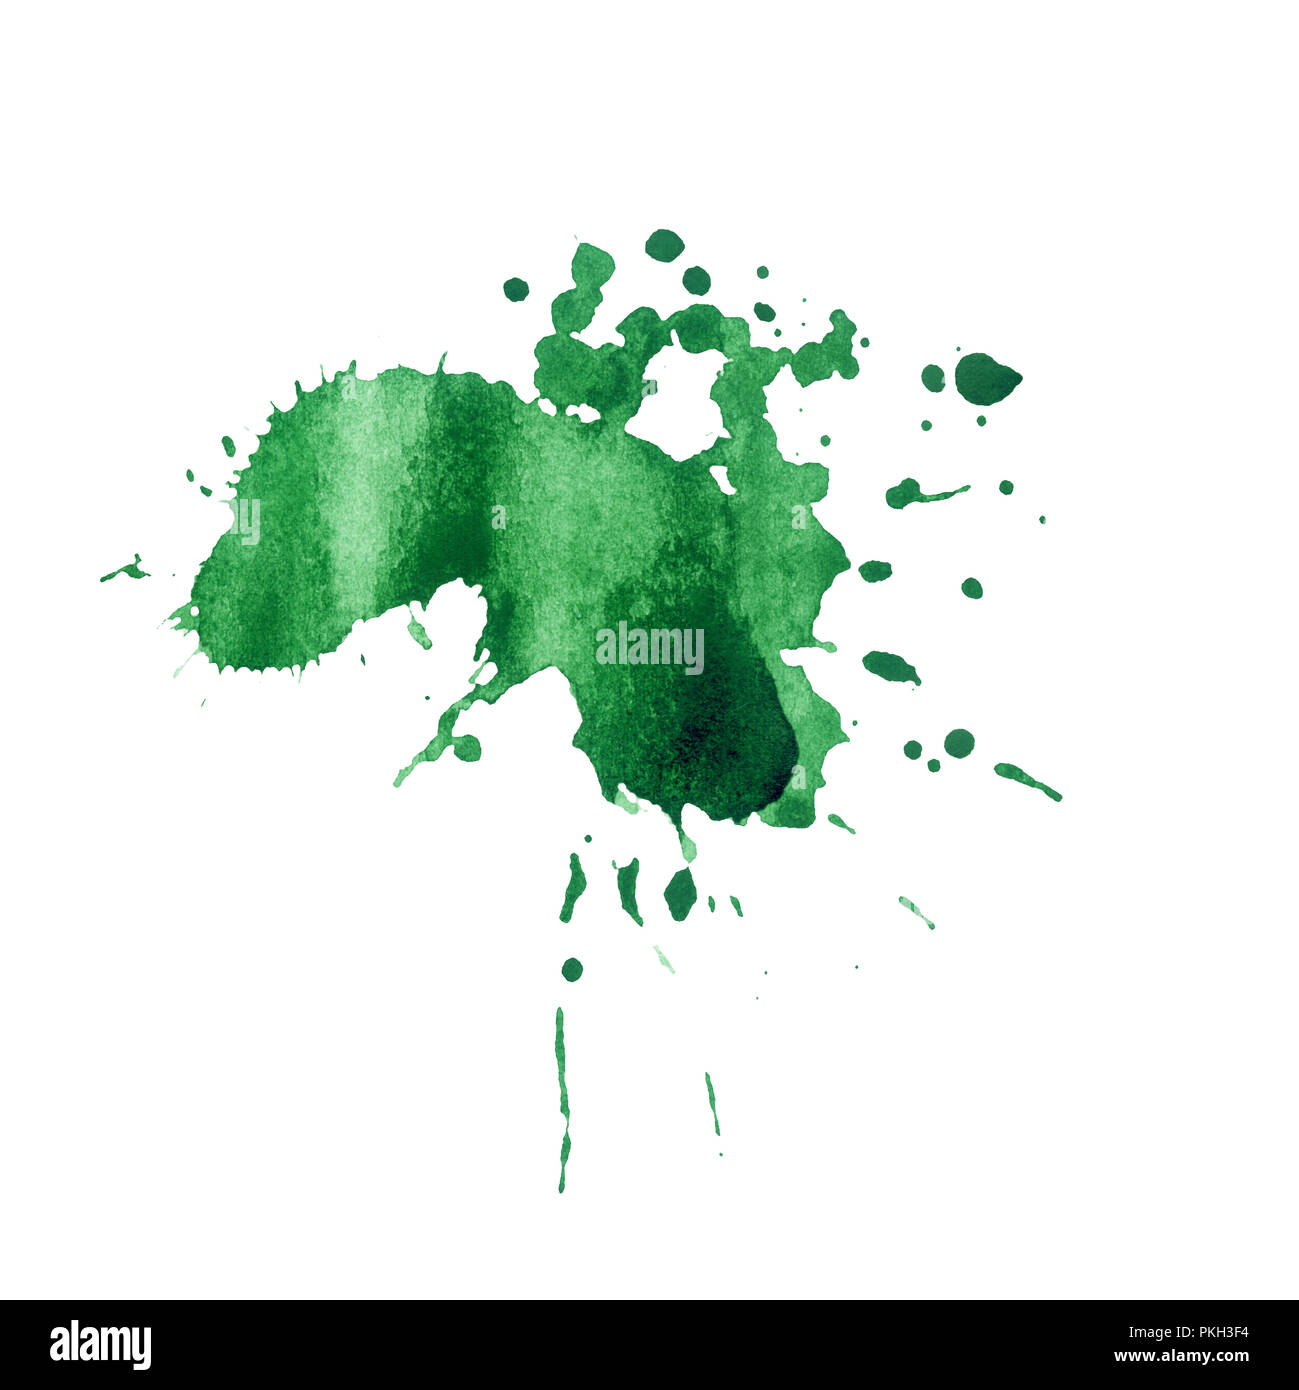 Green paint watercolor splash texture. Hand drawn inkblot on paper. Green dry spot on white background. Ink splatter. Shapeless paint drop design element. Isolated ink blob raster - Stock Image